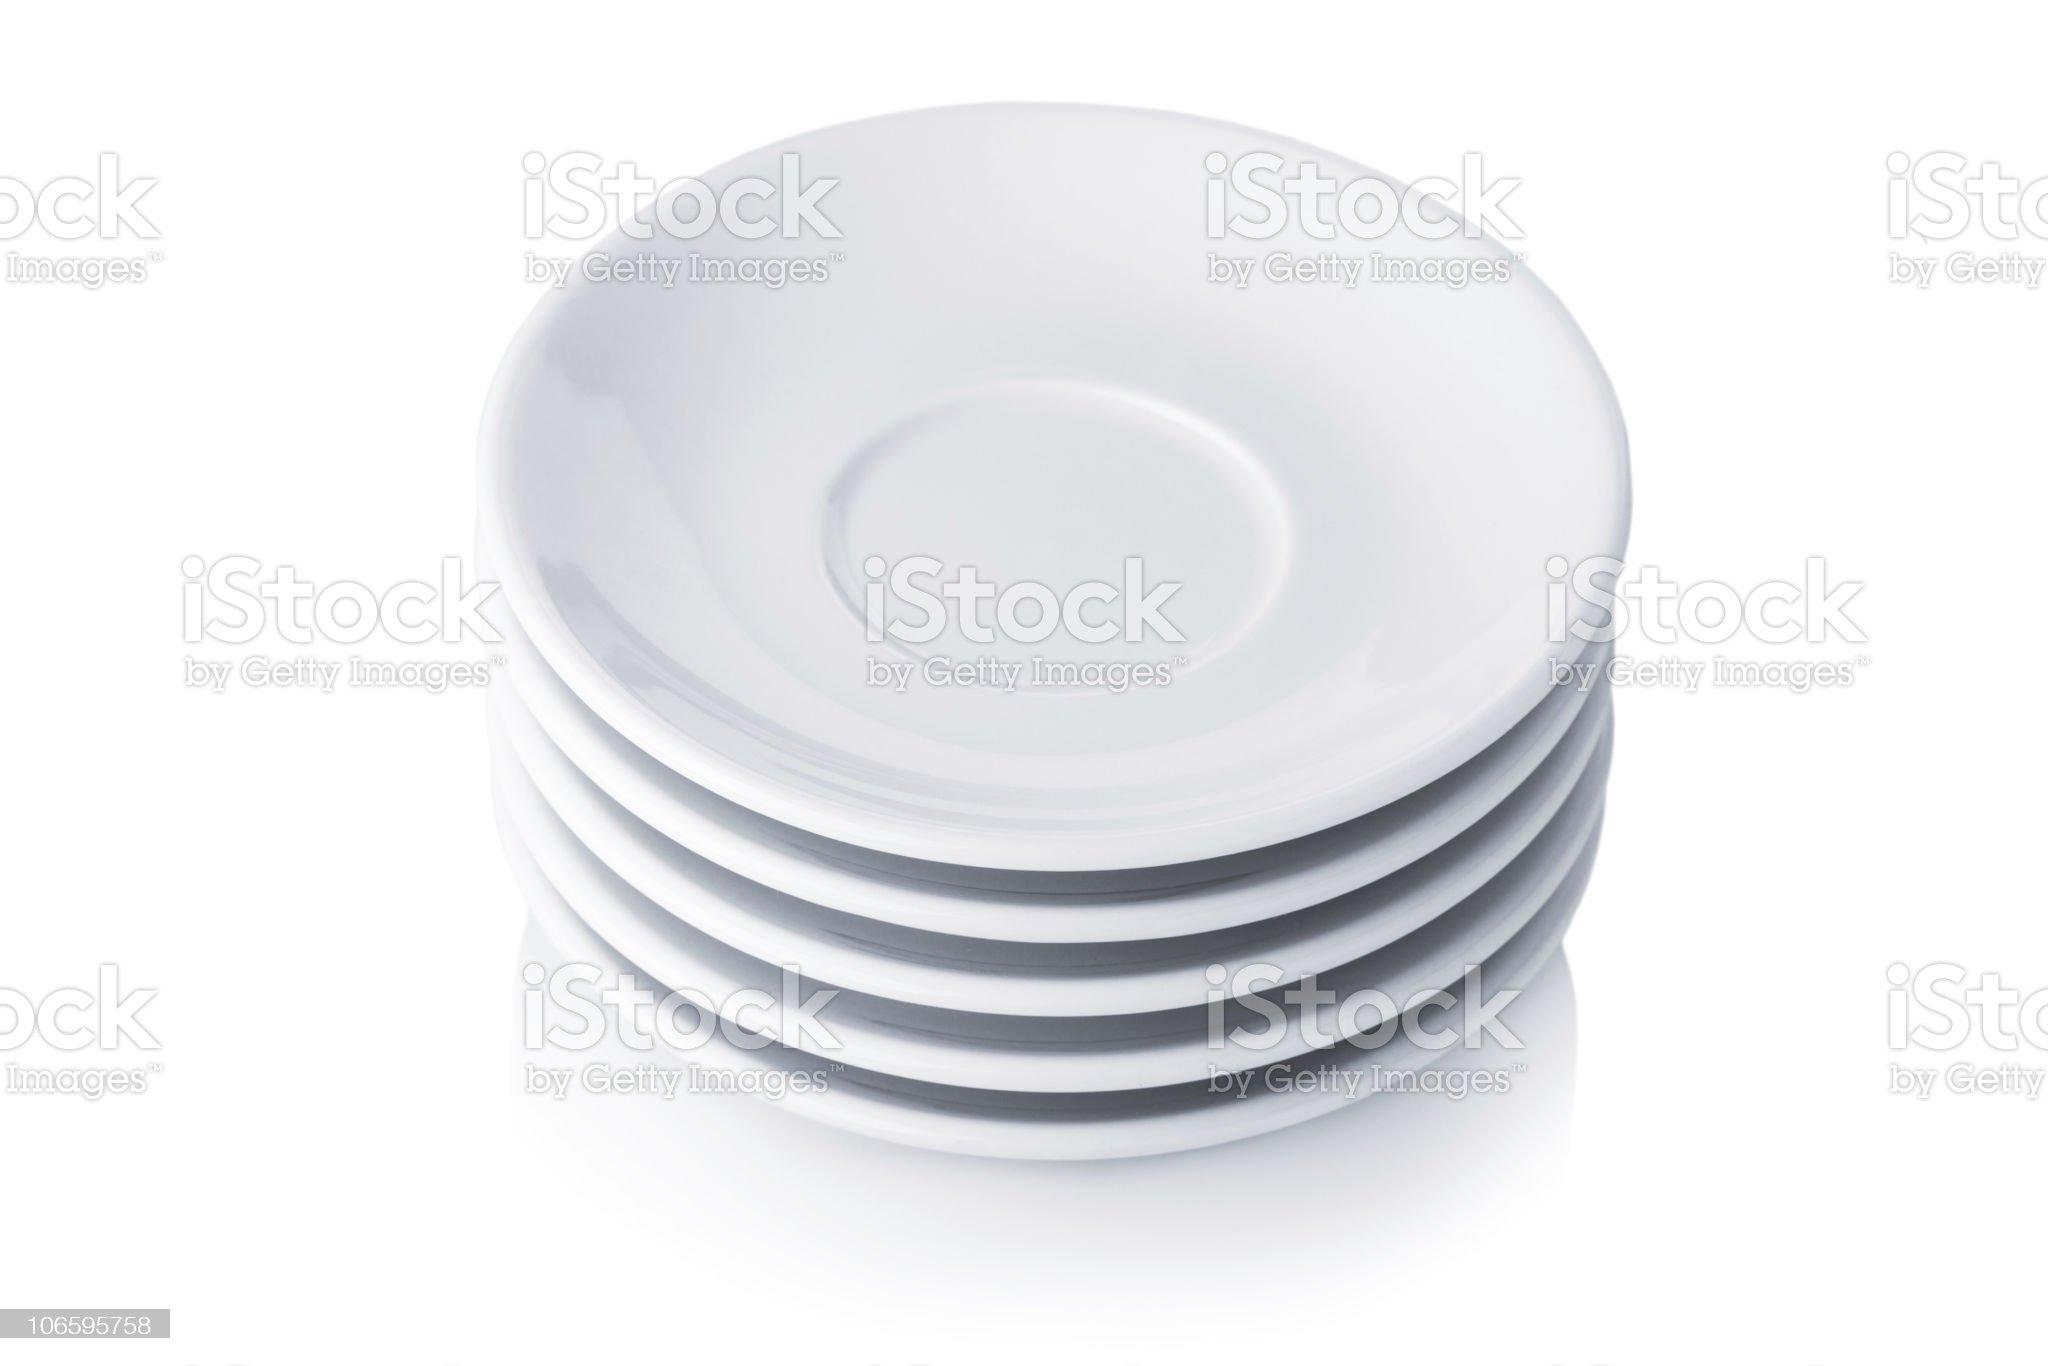 White saucers royalty-free stock photo